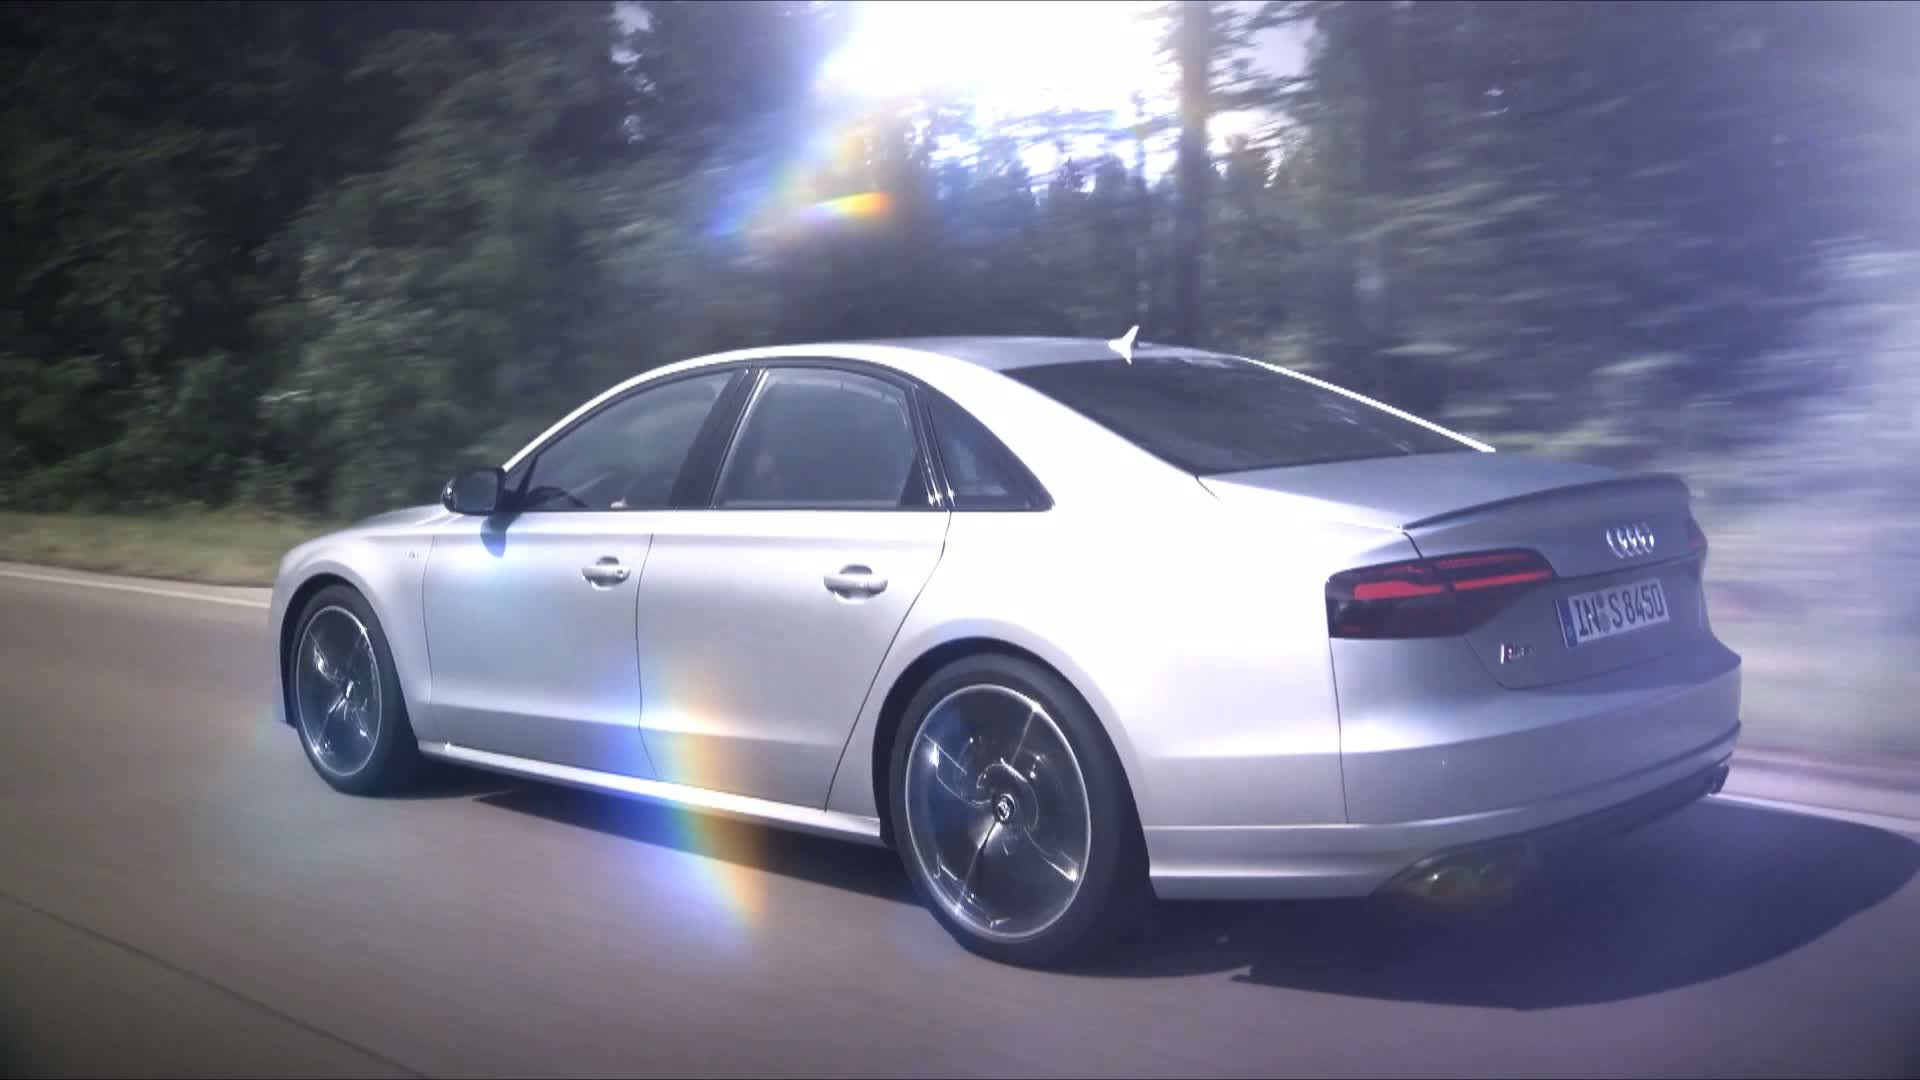 Exclusive road test – The new Audi S8 plus